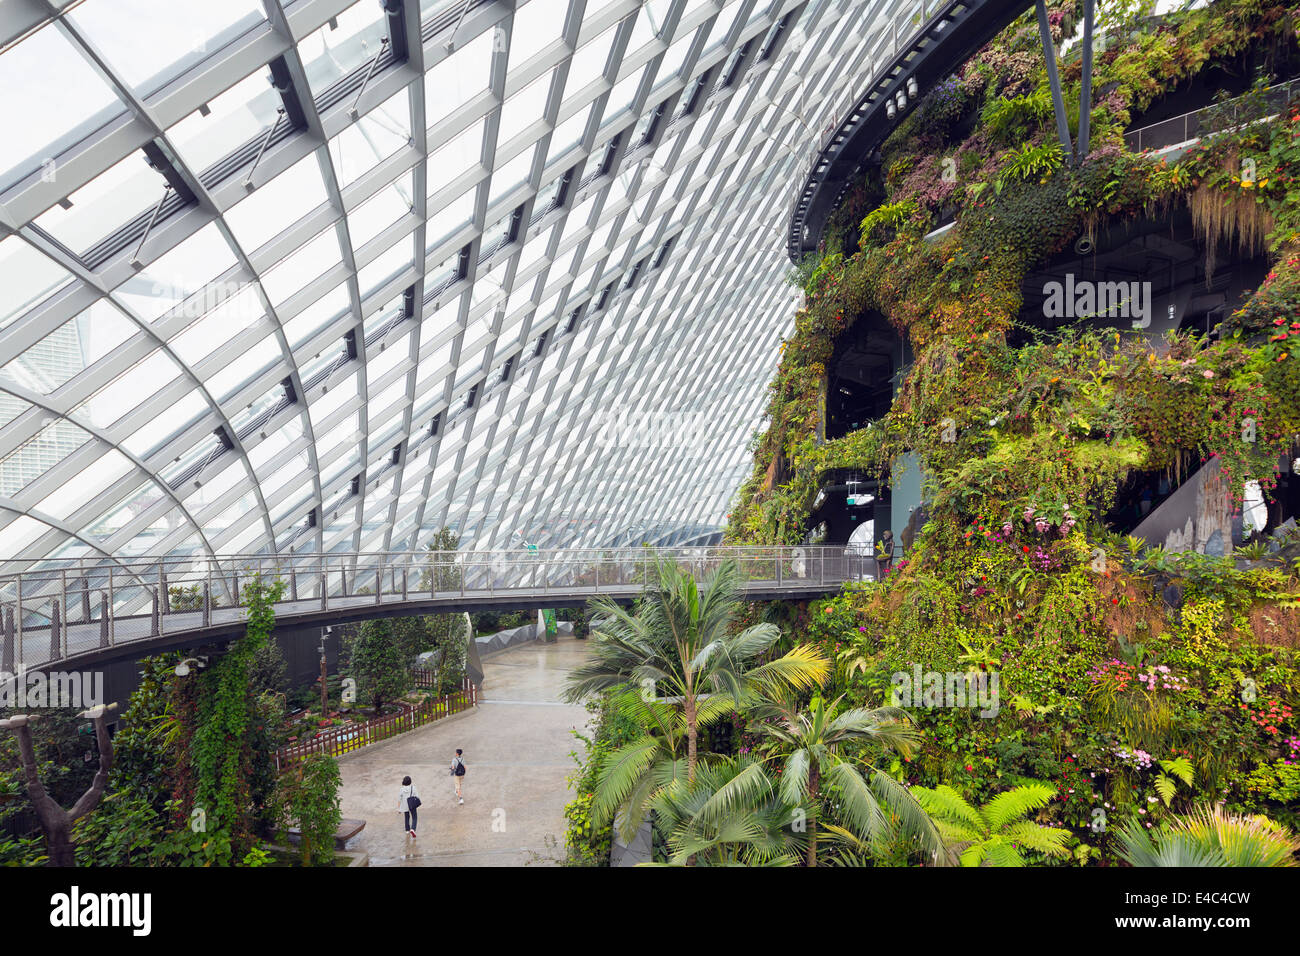 South East Asia, Singapore, Gardens by the Bay Cloud Forest botanic garden, canopy walkway Stock Photo